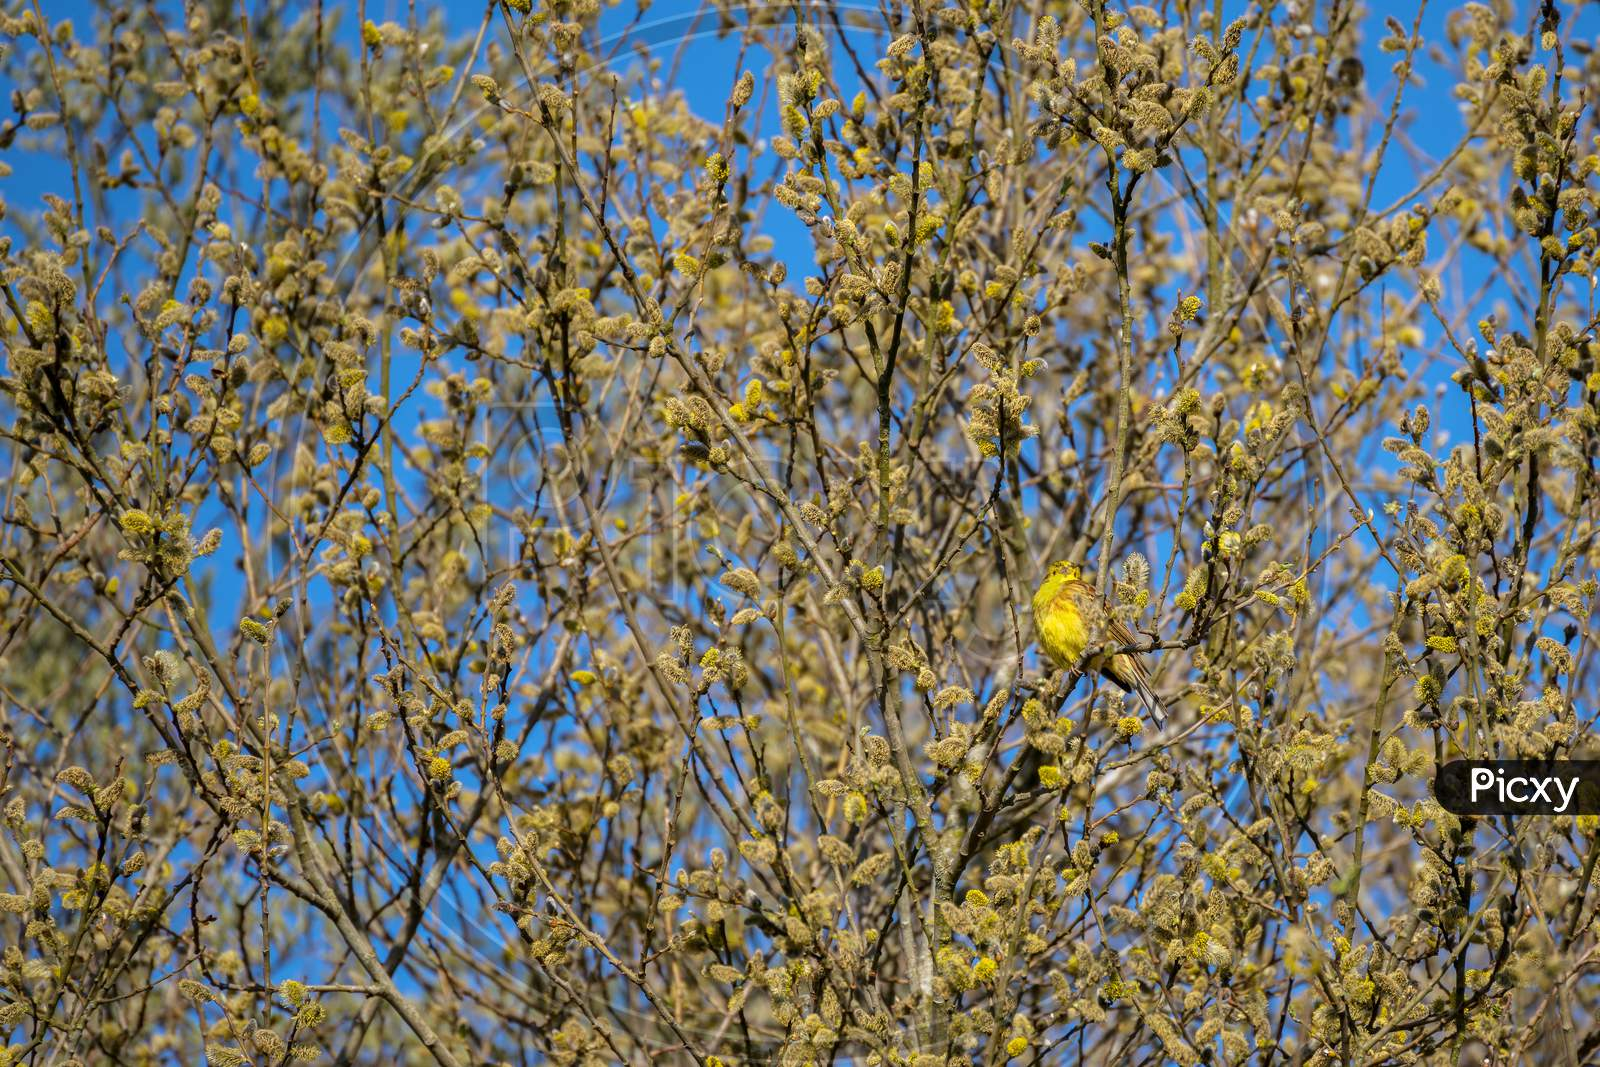 Yellowhammer (Emberiza Citrinella) Enjoying The Spring Sunshine